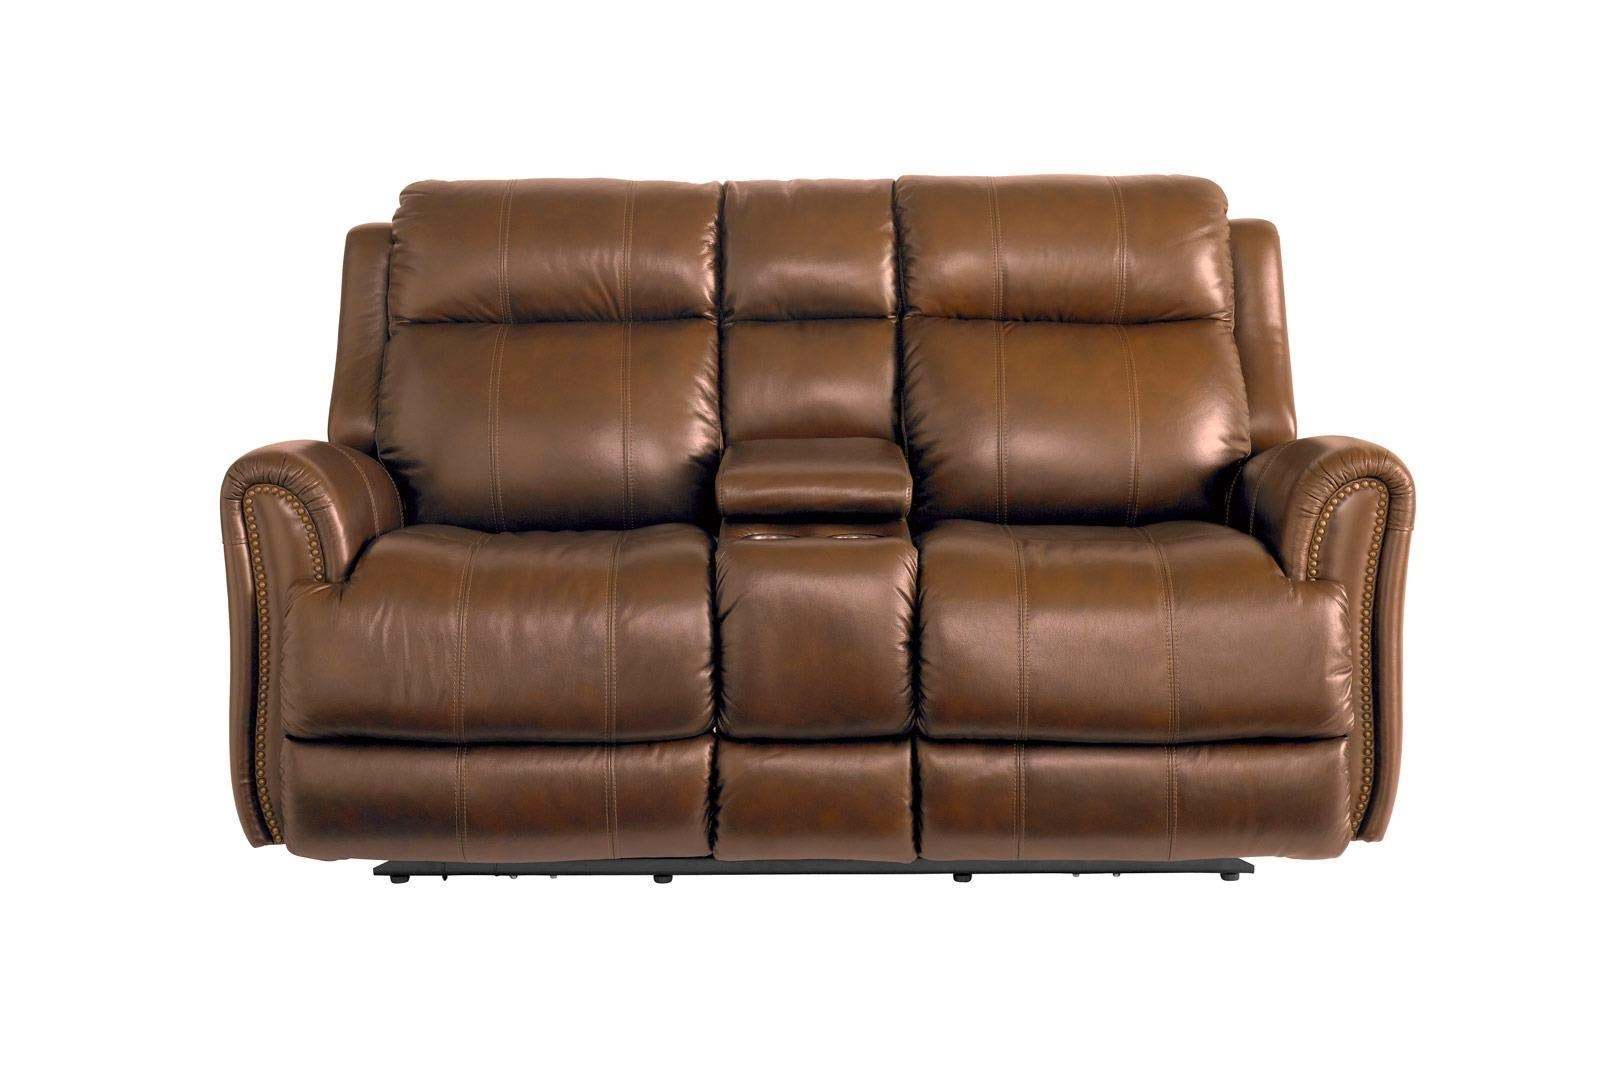 Reclining Loveseat With Console Leather Trendy Recliners Chairs U Sofa Leather Reclining: reclining loveseat with center console